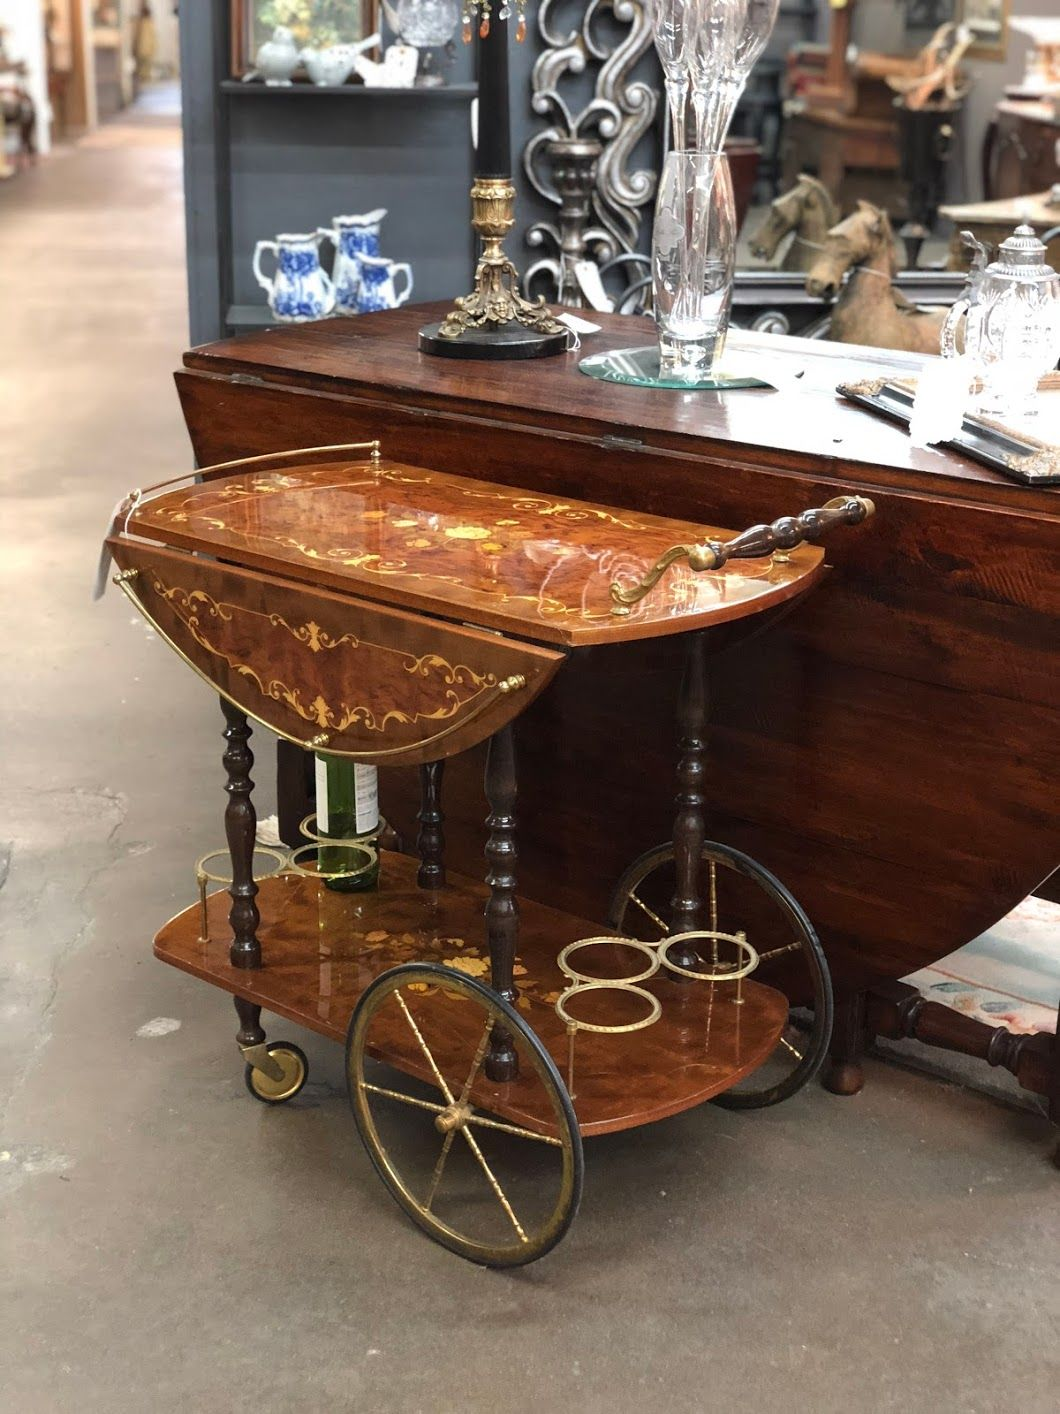 Vintage Italian Floral Drop Side Bar or Tea Cart On Sale With Brass Accents  31